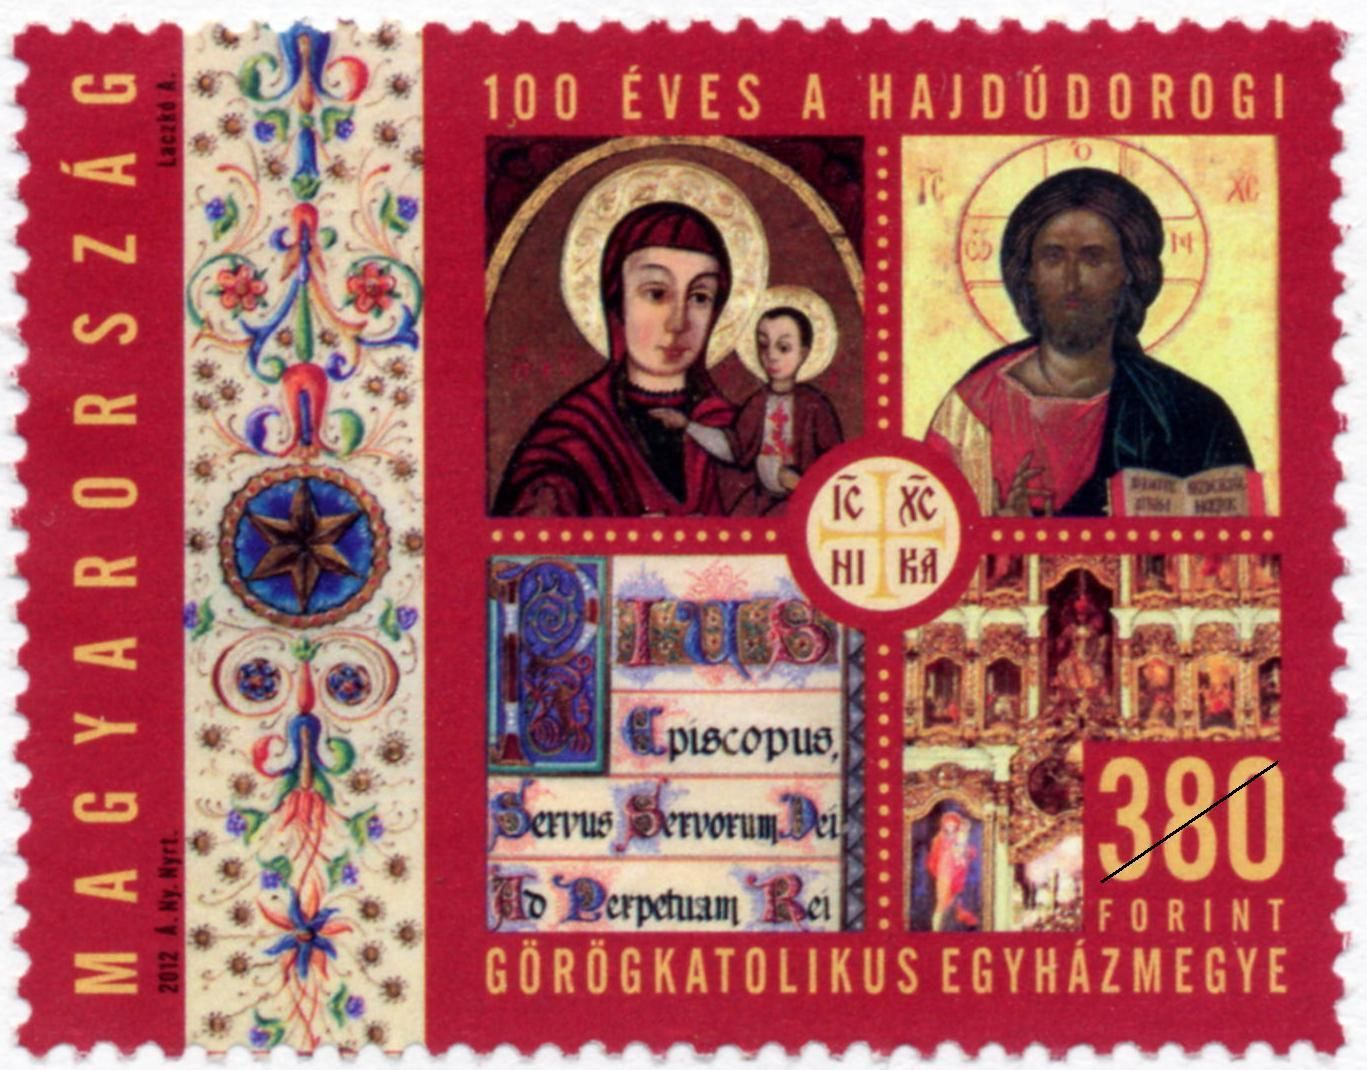 Centenary of the Greek Catholic Diocese of Hajdúdorog